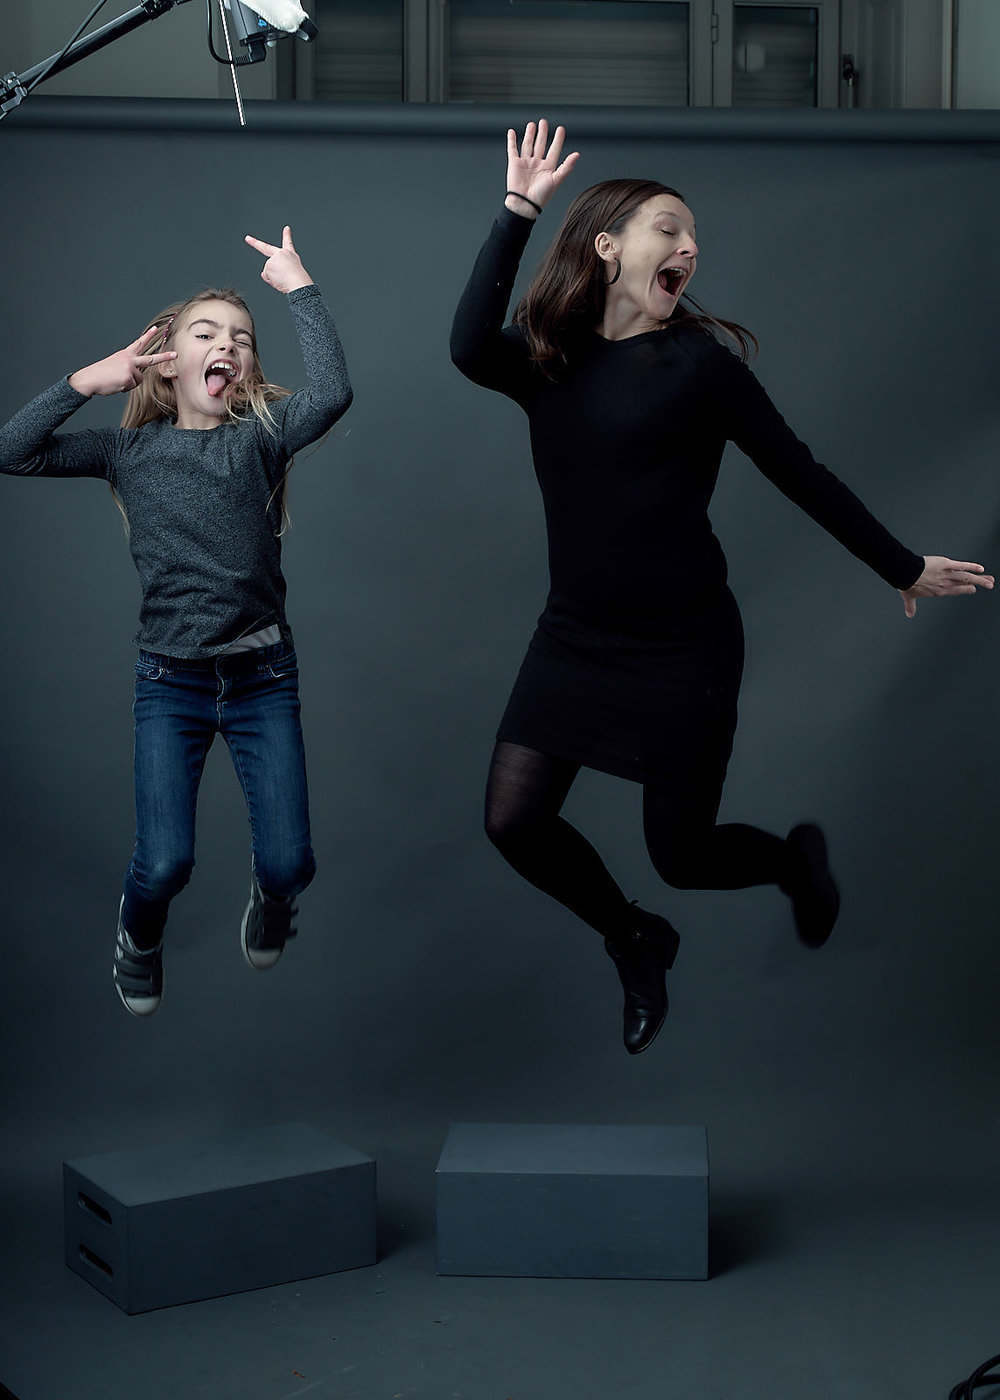 Bring in your family for a memorable photoshoot in Geneva! (unedited image)